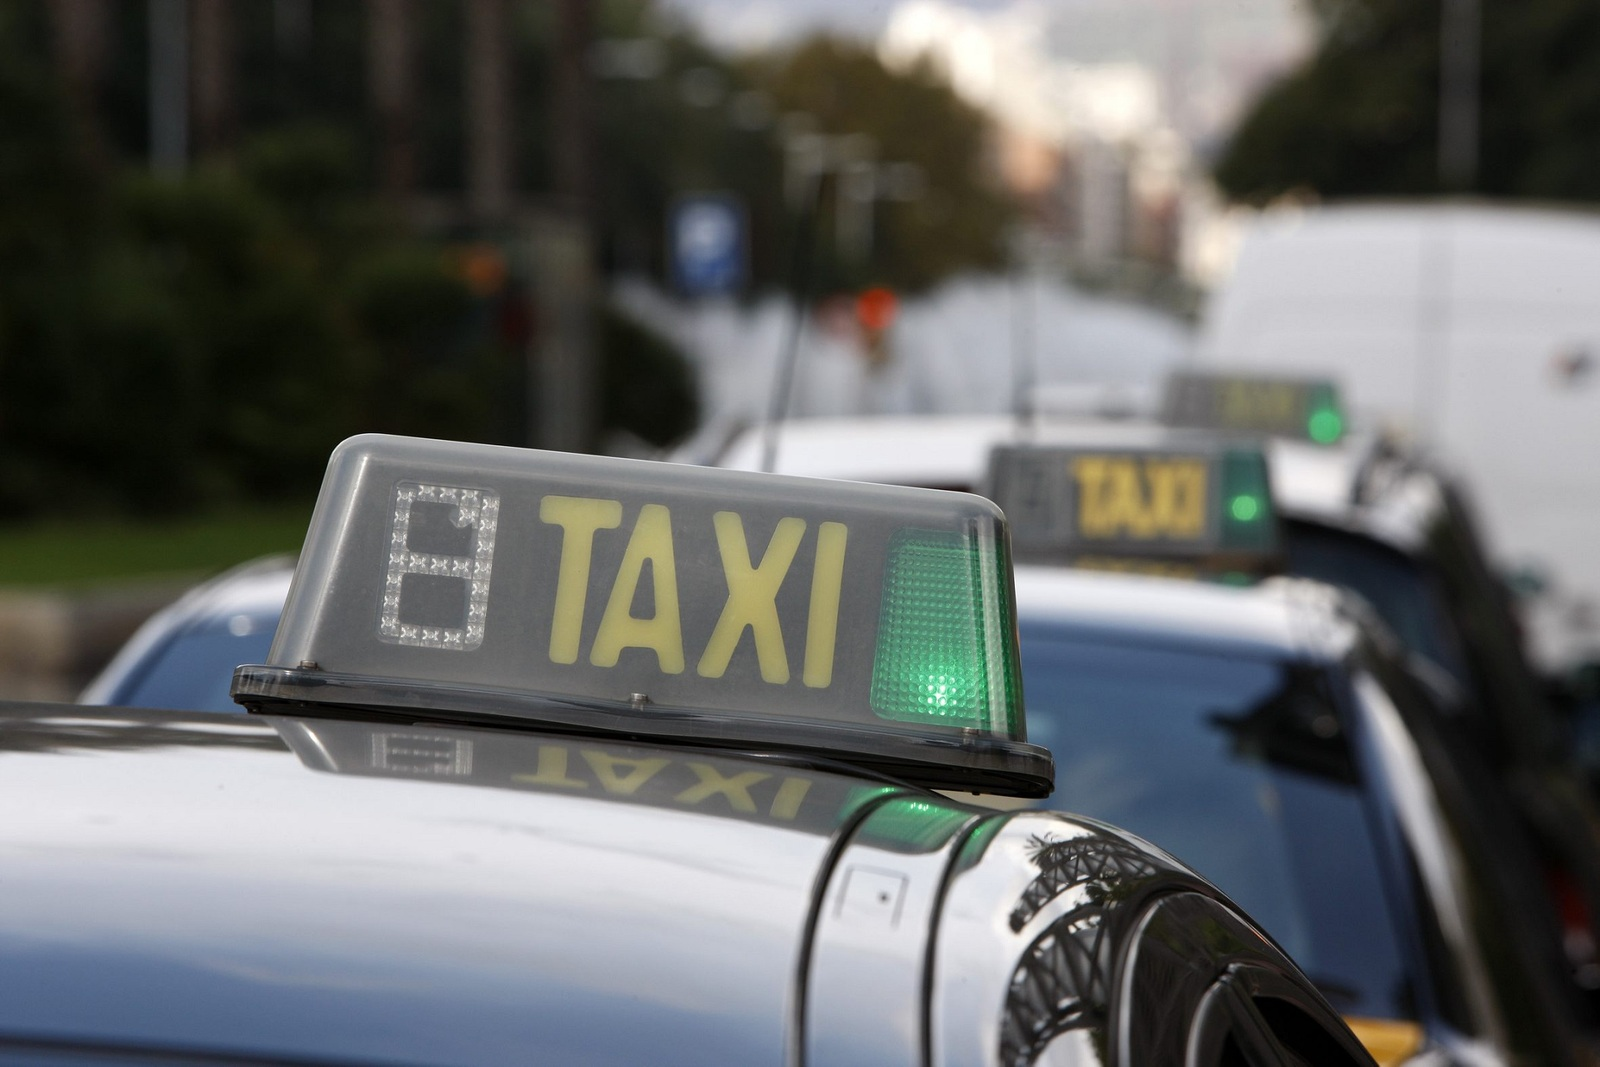 Taxis 2020